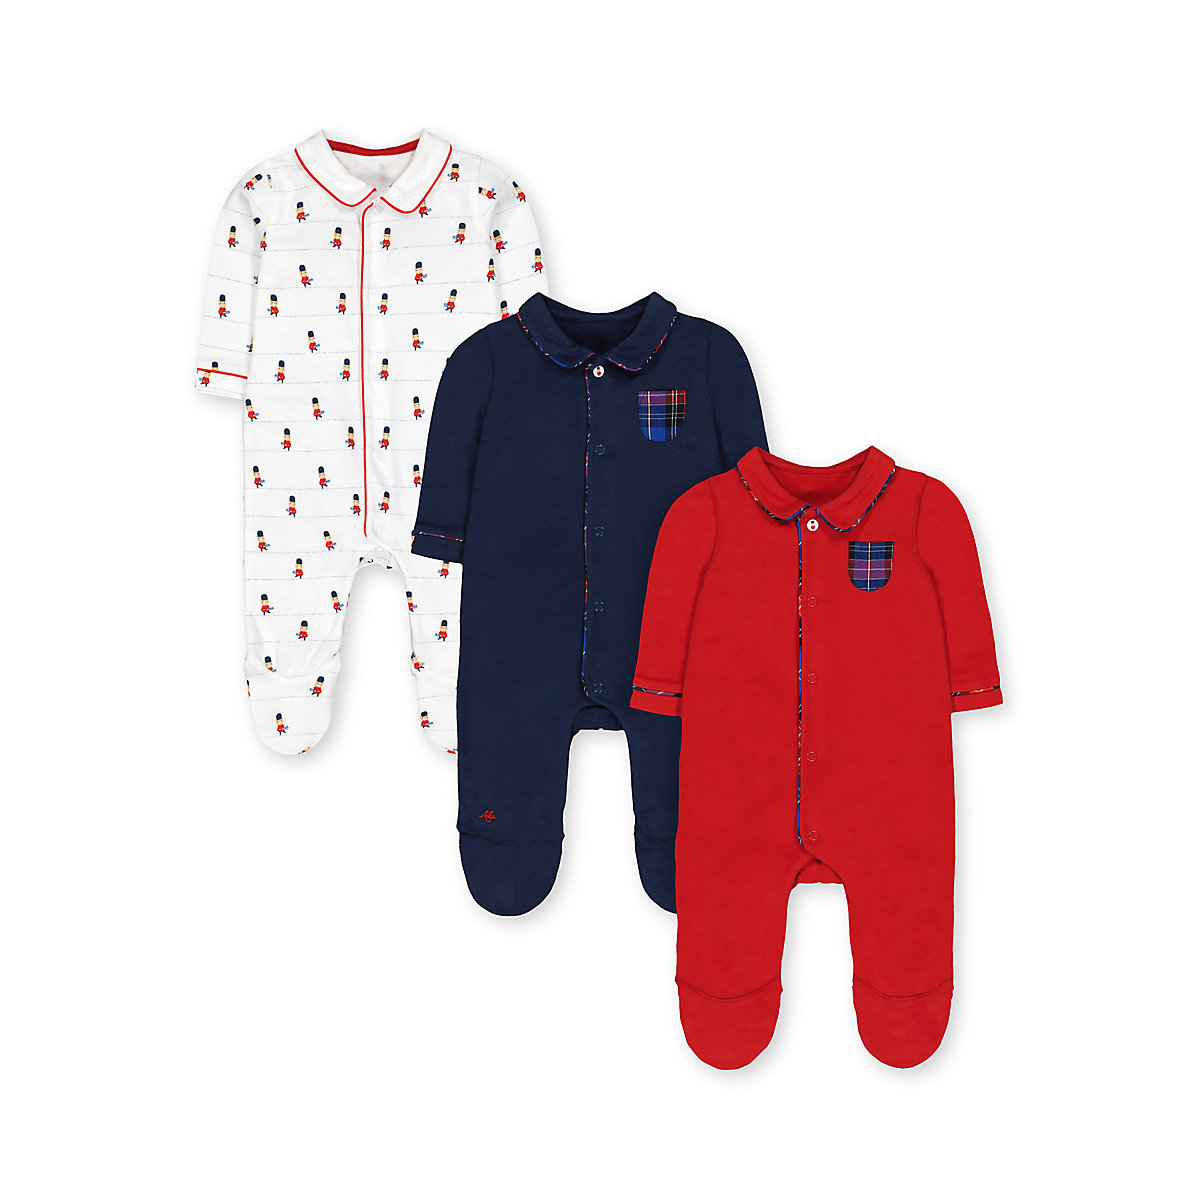 bear guards. navy and red collared sleepsuits - 3 pack